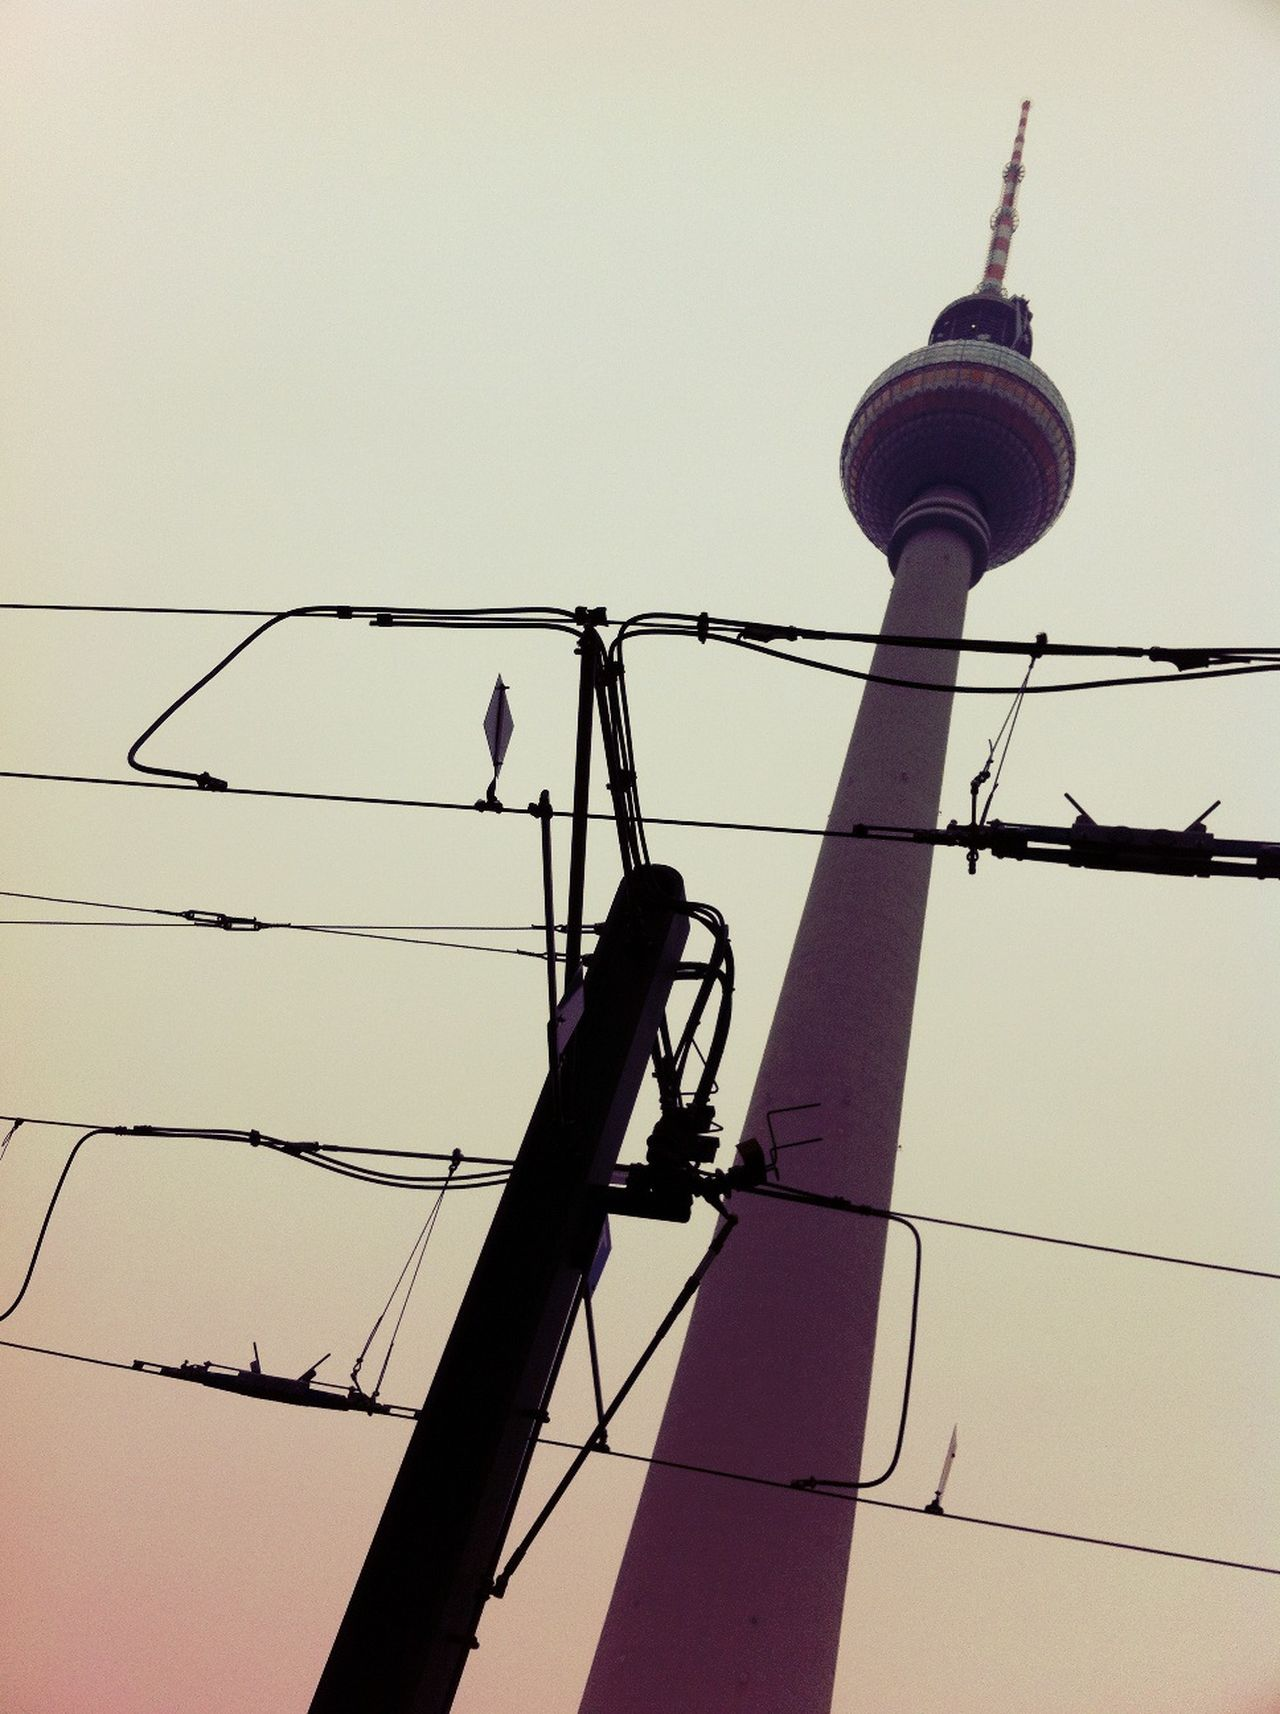 Low angle view of telephone pole and fernsehturm